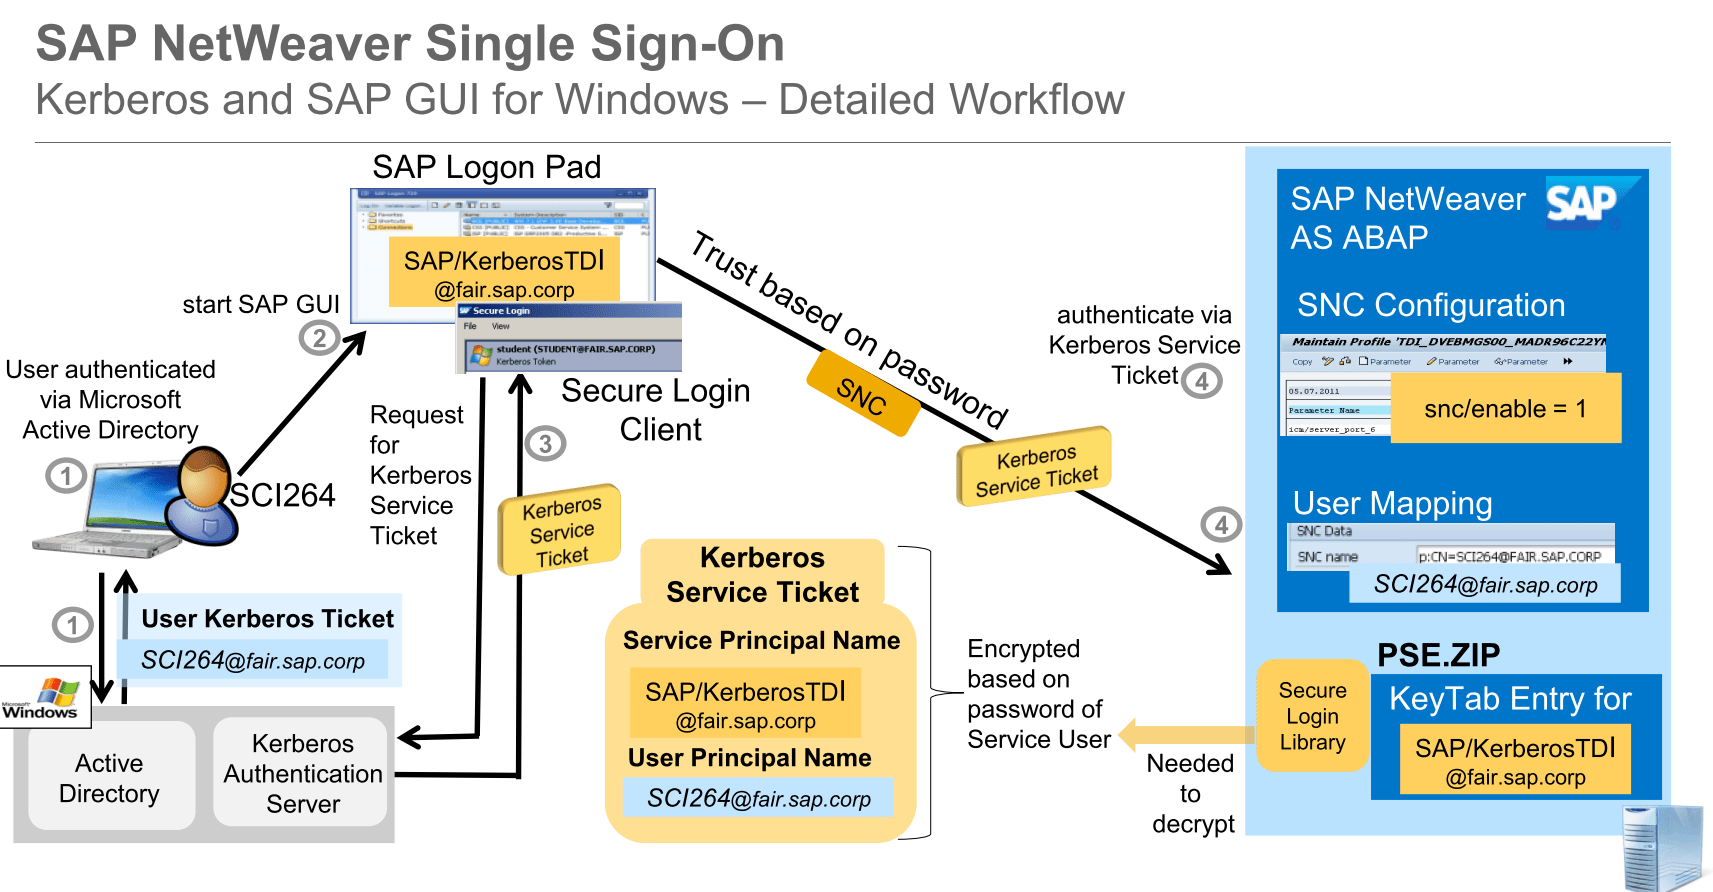 single sign on architecture diagram hino truck wiring diagrams how to configure sap netweaver for gui